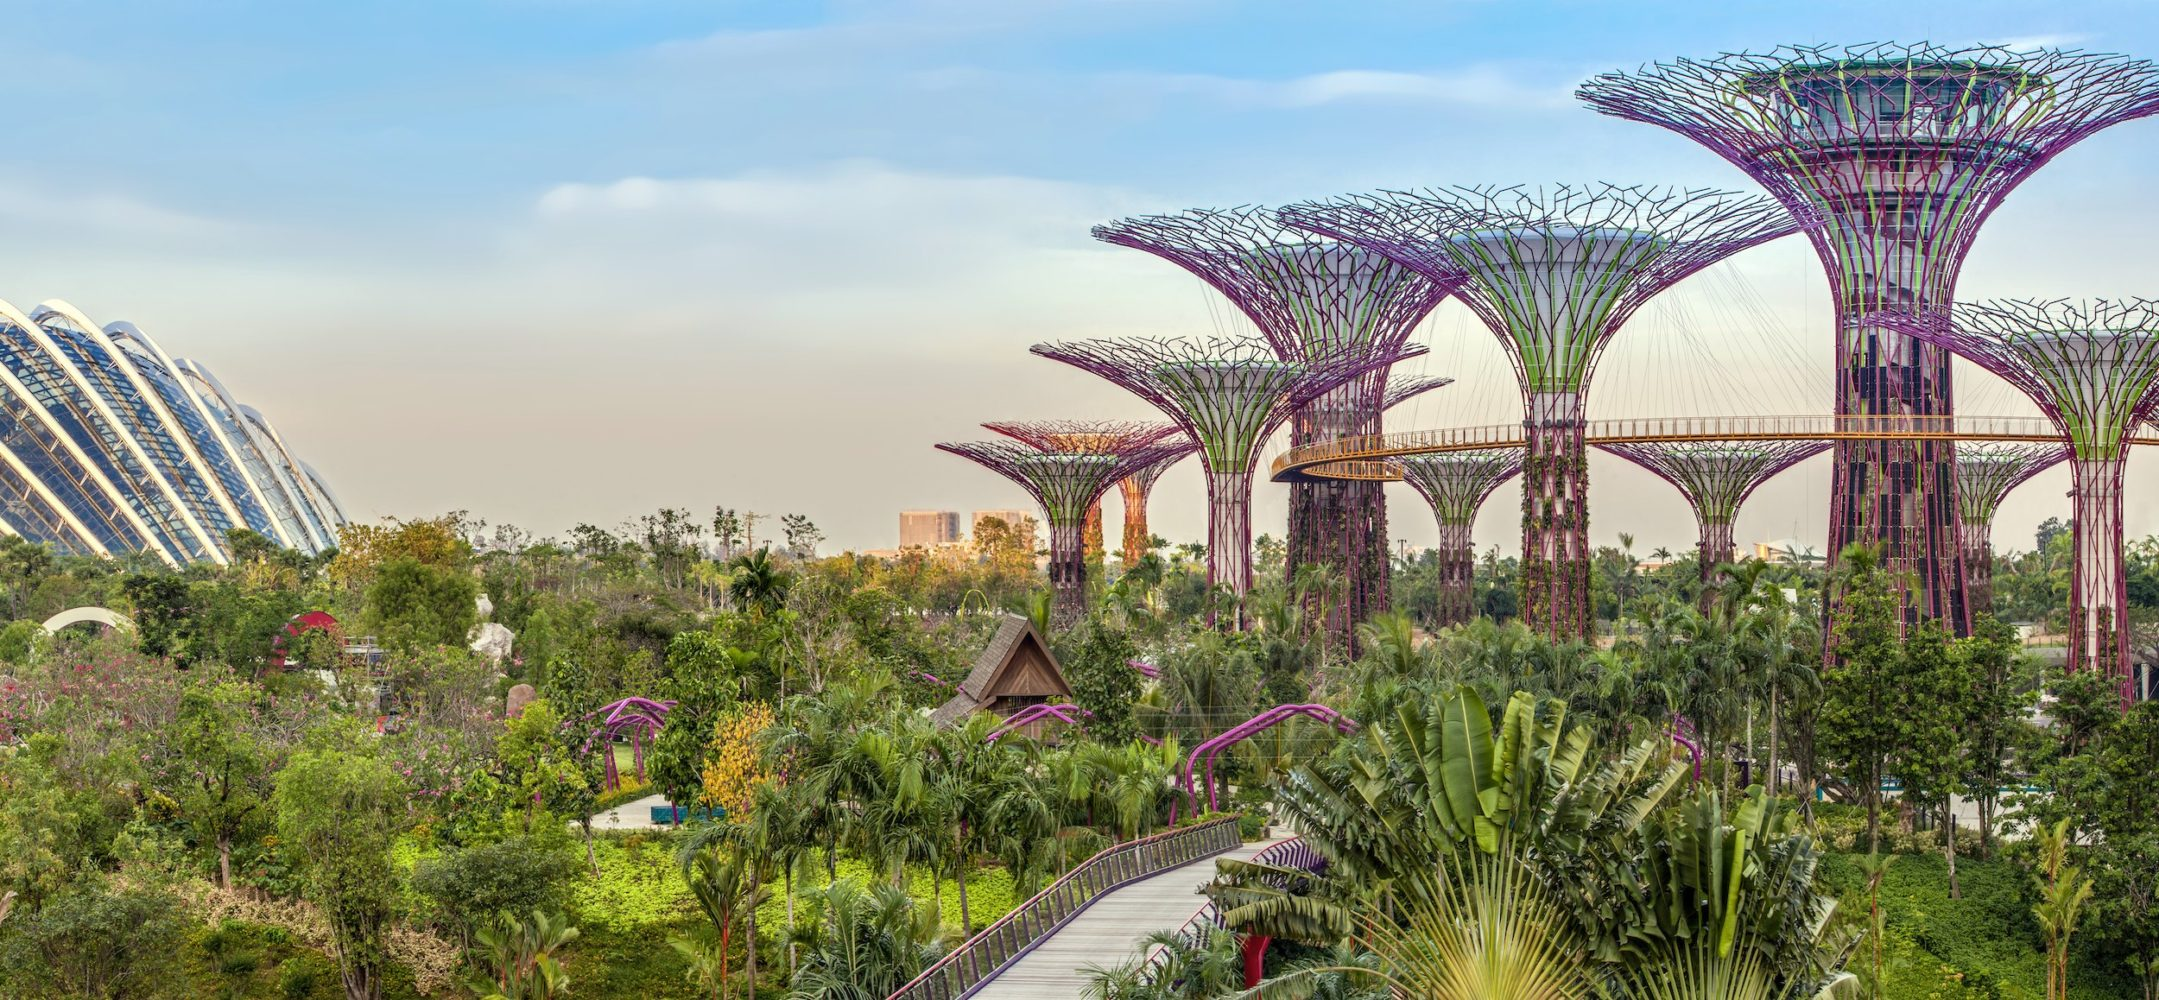 Singapore: The City in a Garden